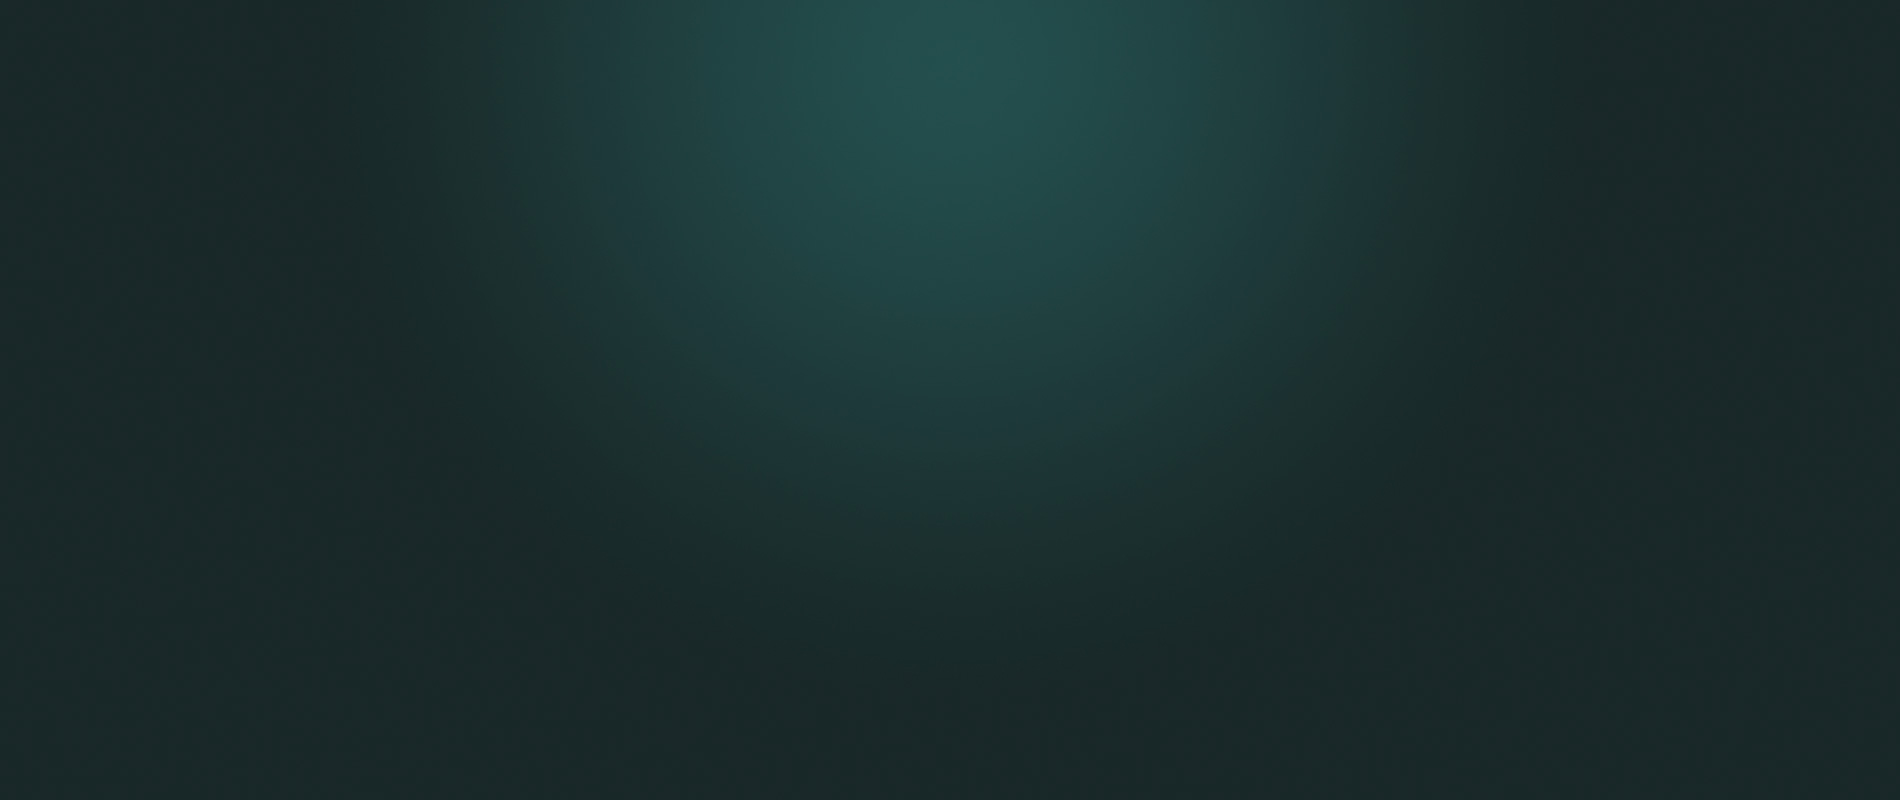 background gradient dark green by gds70 on deviantart